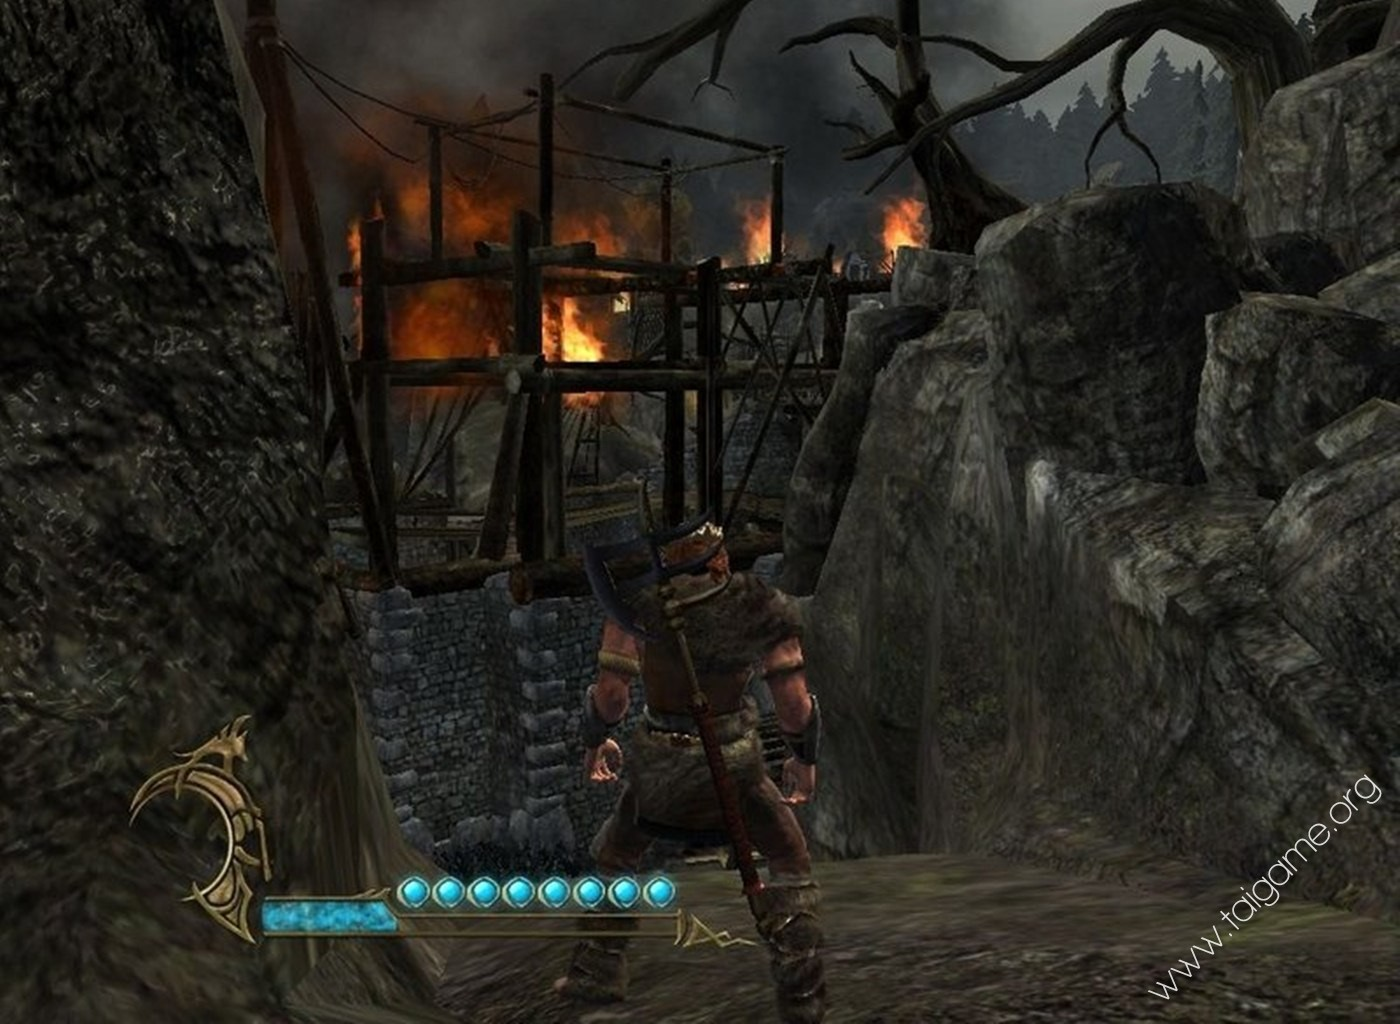 Beowulf pc gameplay hd,free download youtube.